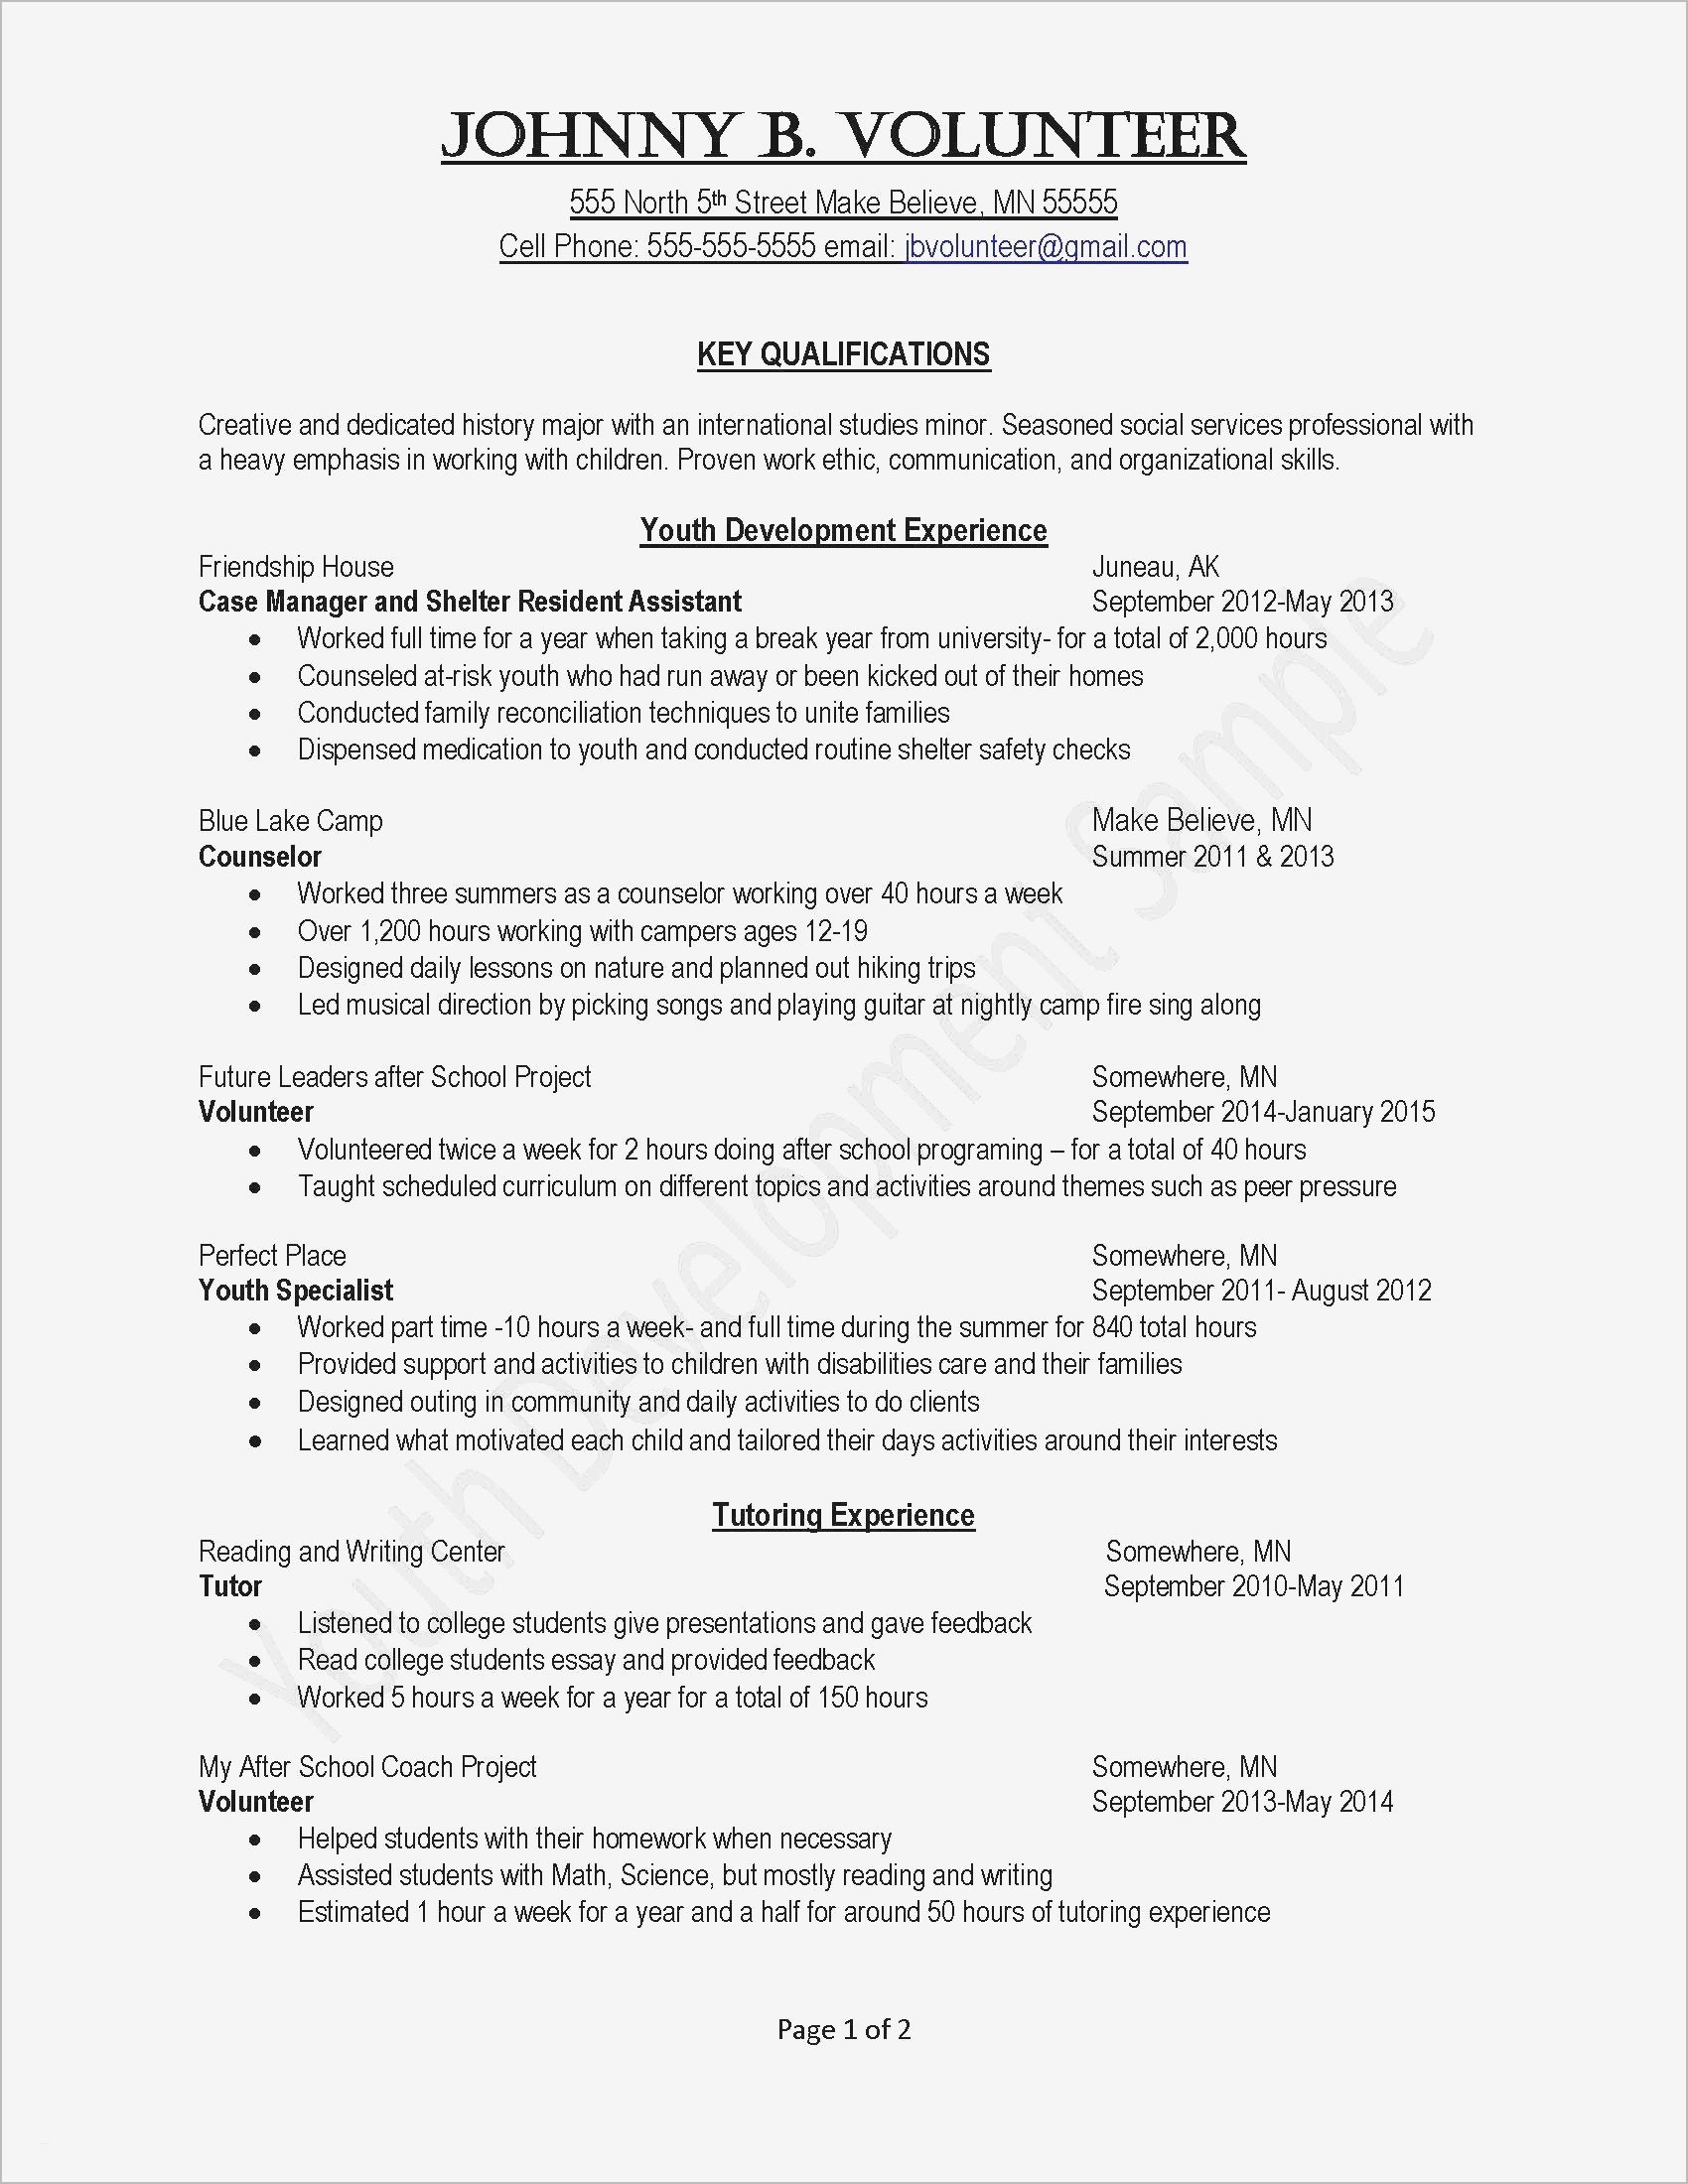 Plain Cover Letter Template - Copy A Cover Letter for A Job Application Beautiful Elegant Job